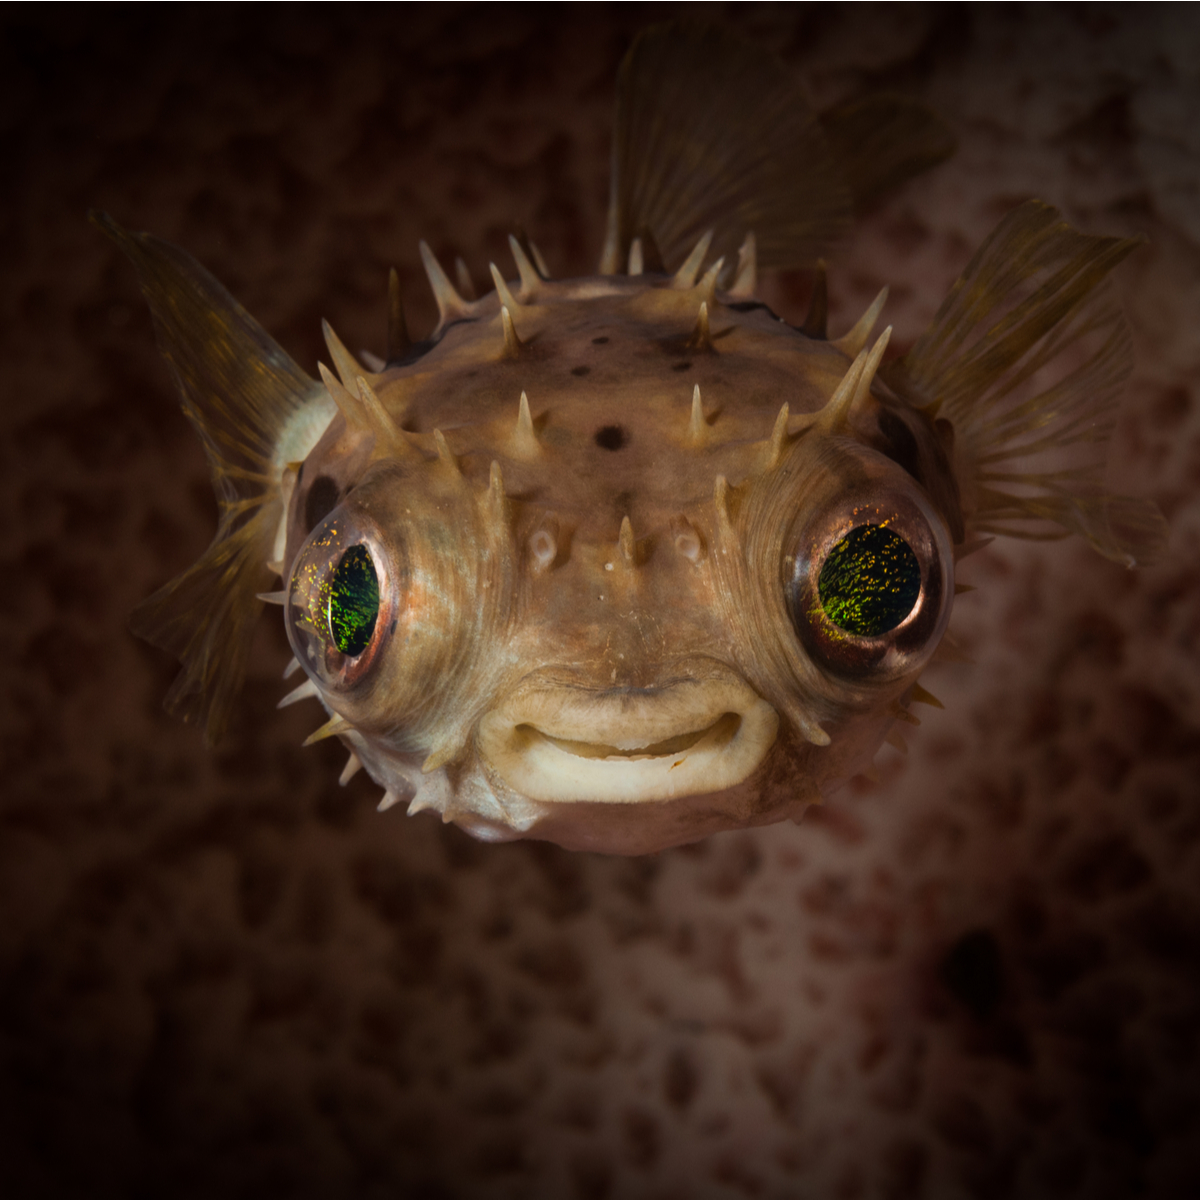 Fish with a beautiful set of pearly whites, smiles for the camera. {Pic}